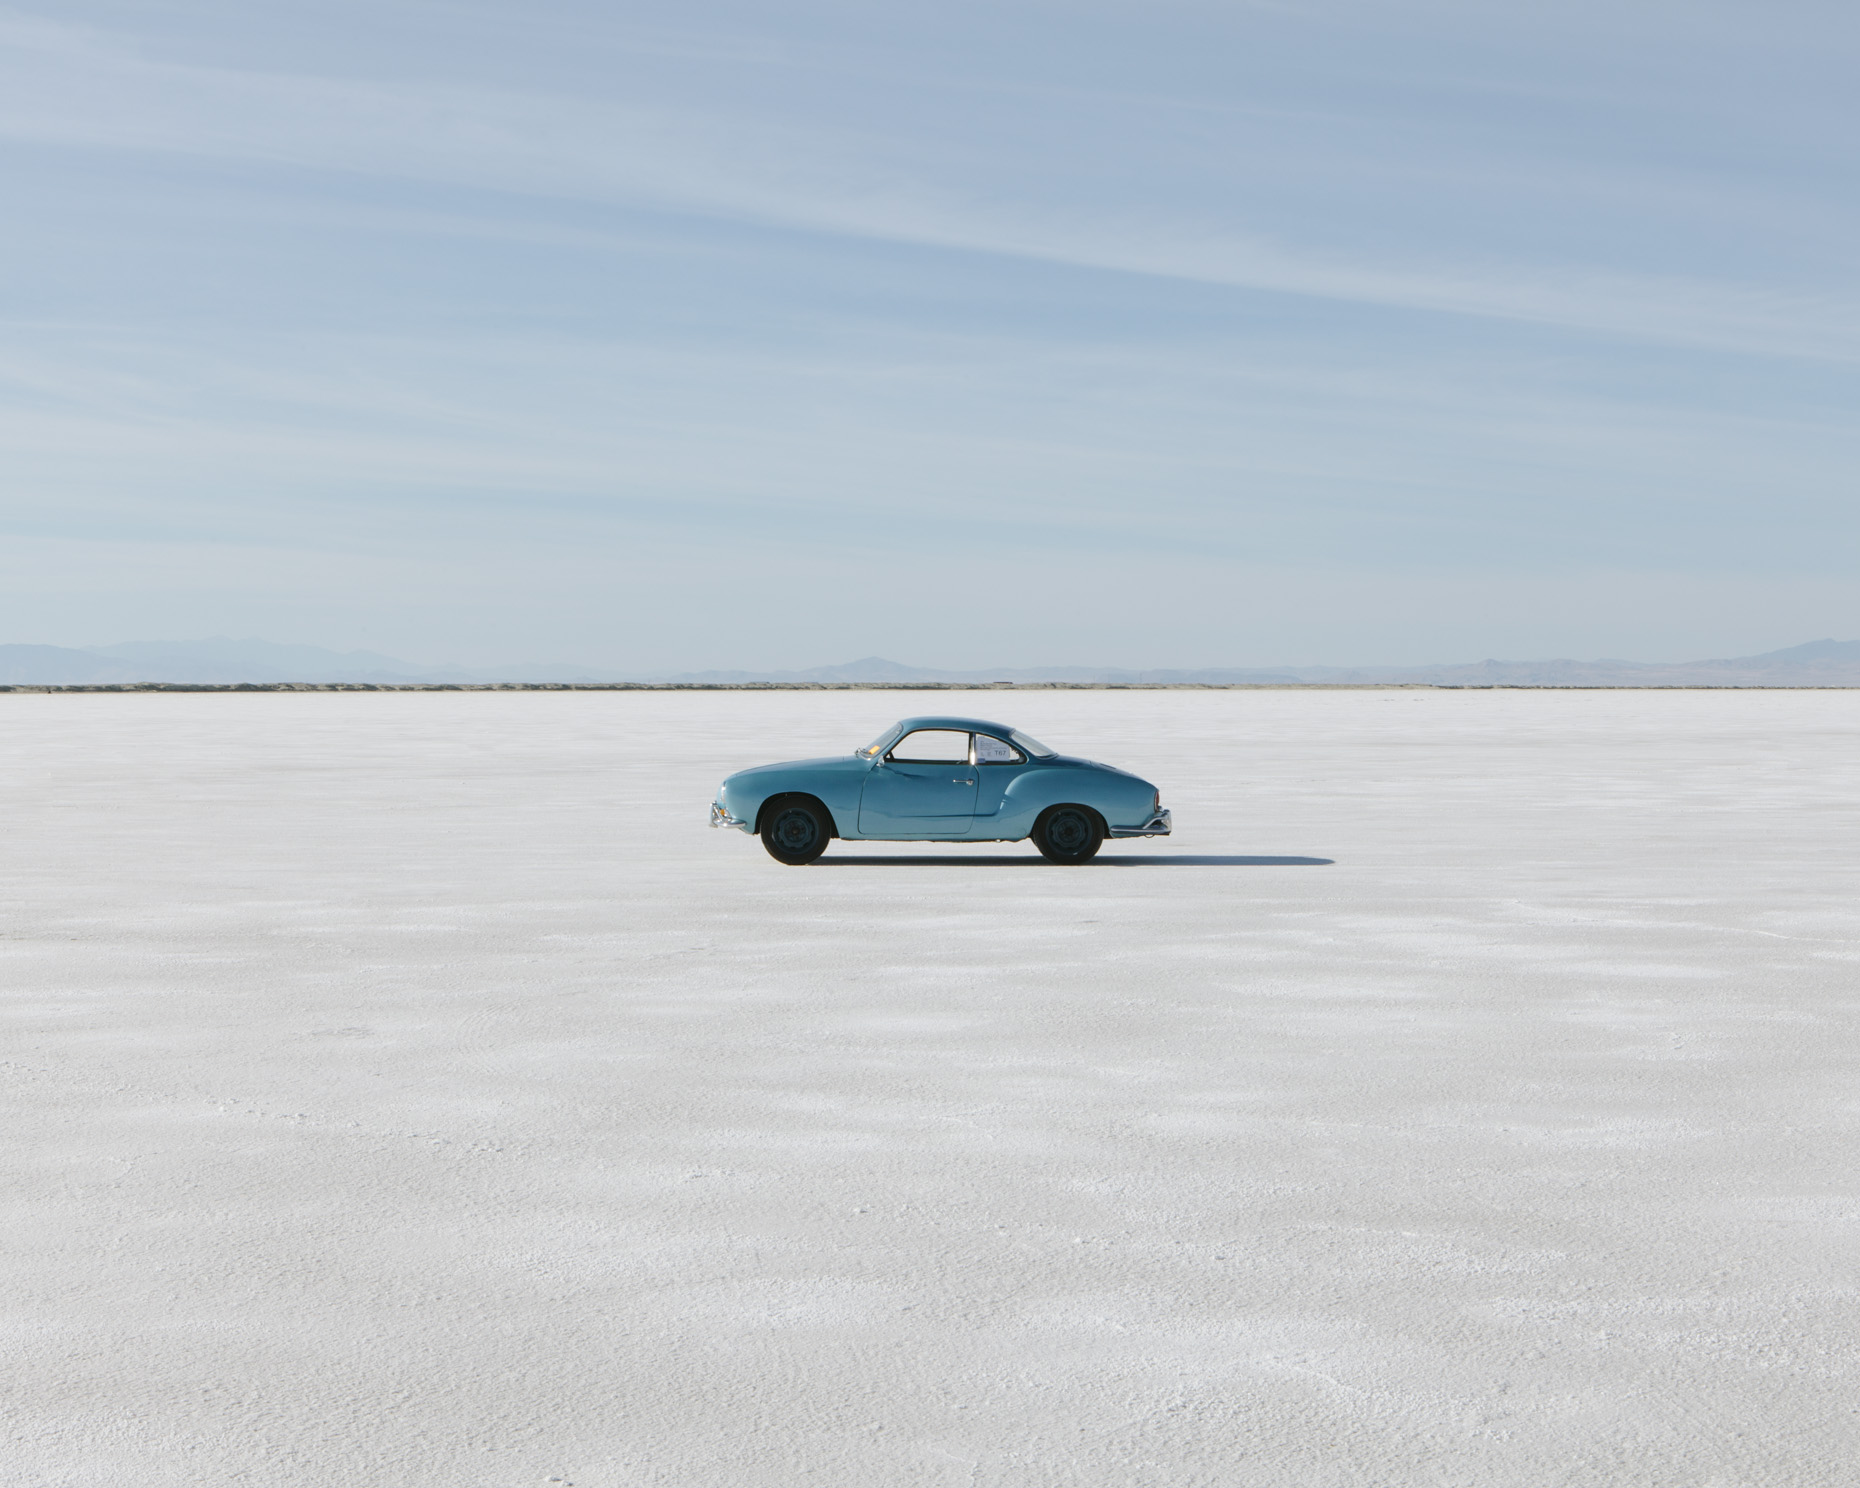 Vintage Karmann Ghia car on Bonneville Salt Flats, World of Speed, Utah - Paul Edmondson